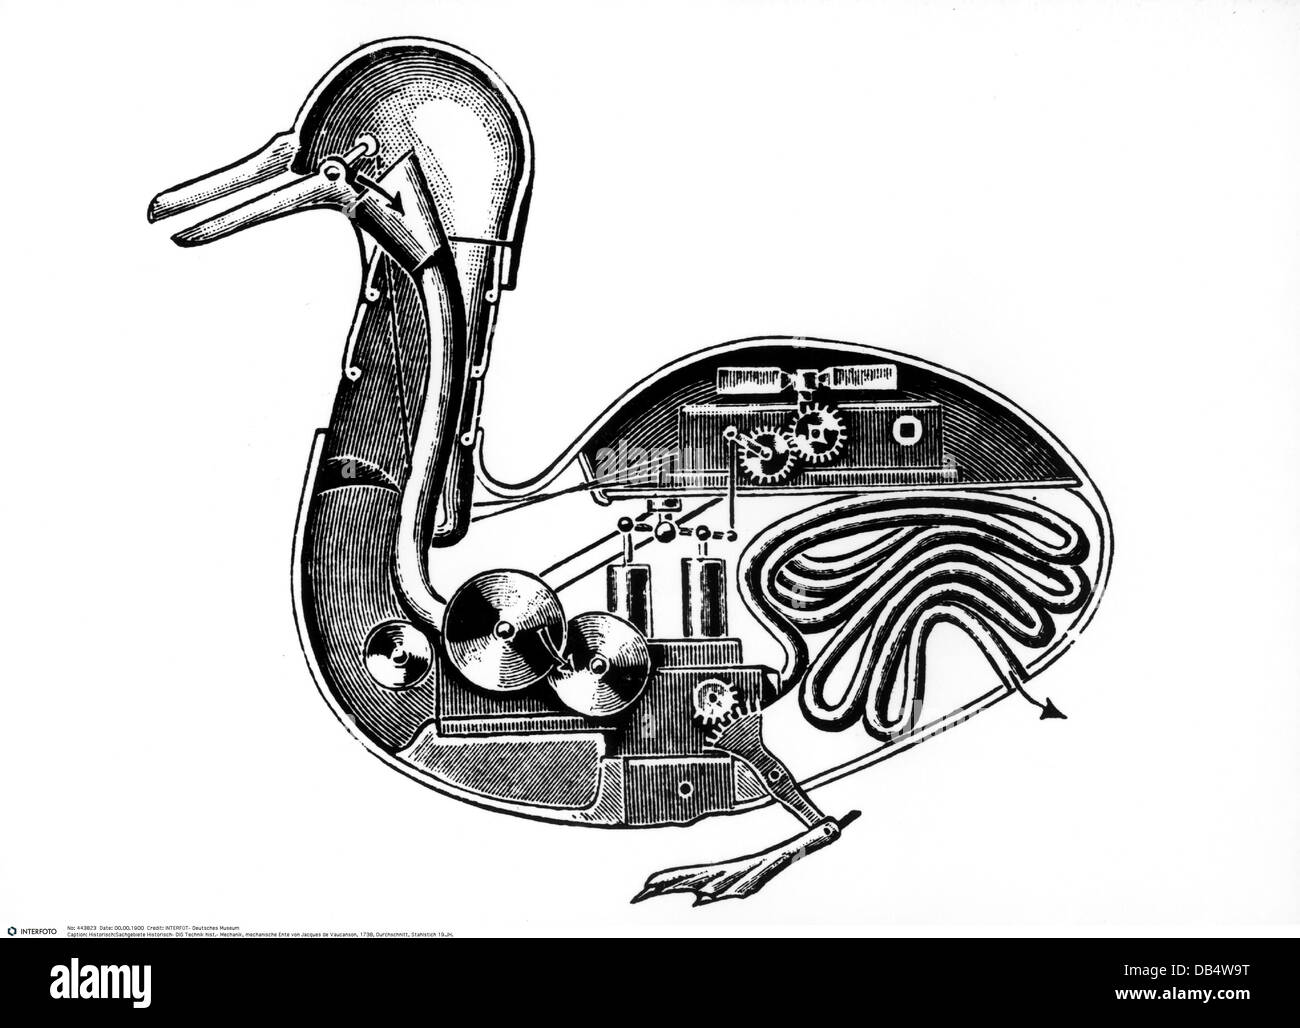 technics, mechanics, mechanical duck by Jacques de Vaucanson, 1738, Additional-Rights-Clearences-Not Available Stock Photo